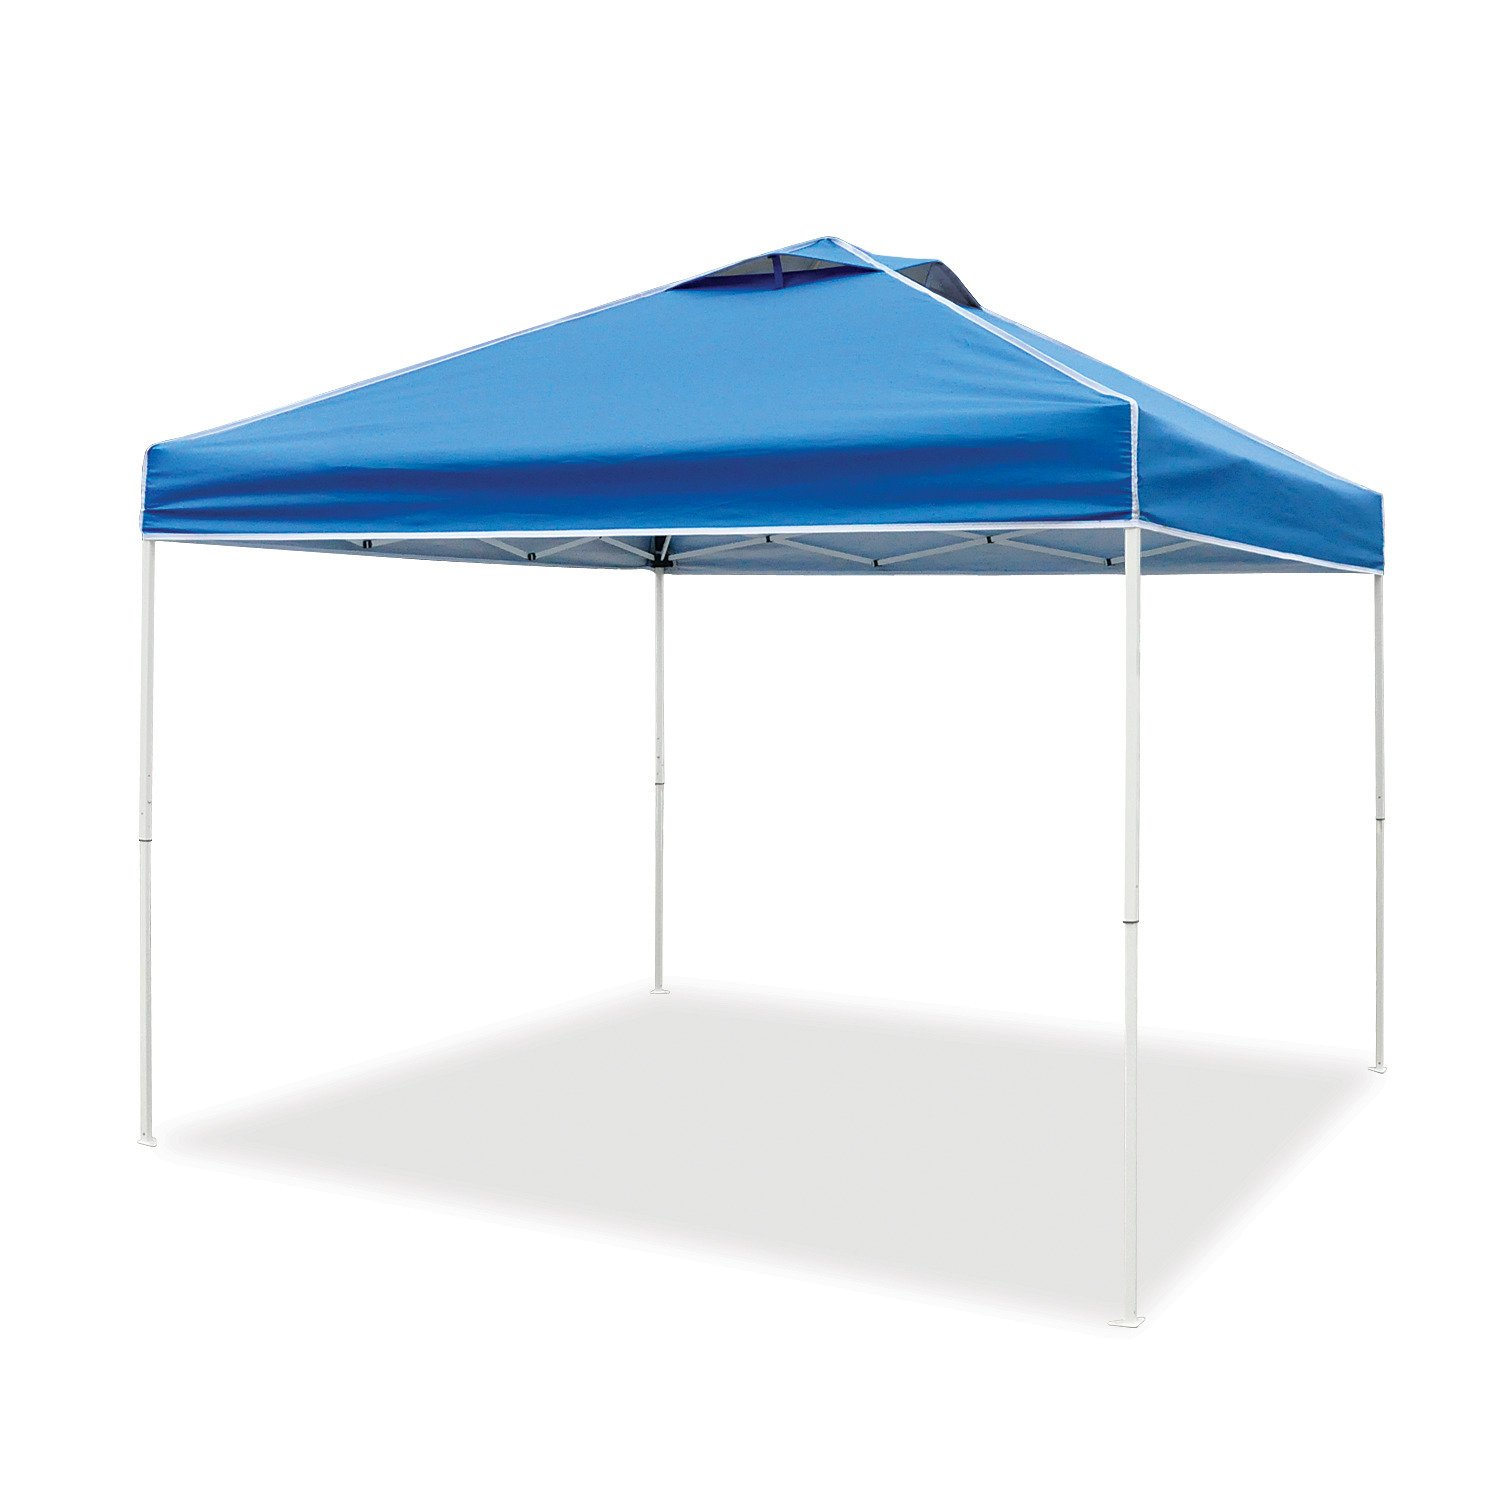 Z-Shade Everest II 10 ft x 10 ft Pop-Up Canopy  sc 1 st  Academy Sports + Outdoors & Z-Shade Everest II 10 ft x 10 ft Pop-Up Canopy | Academy